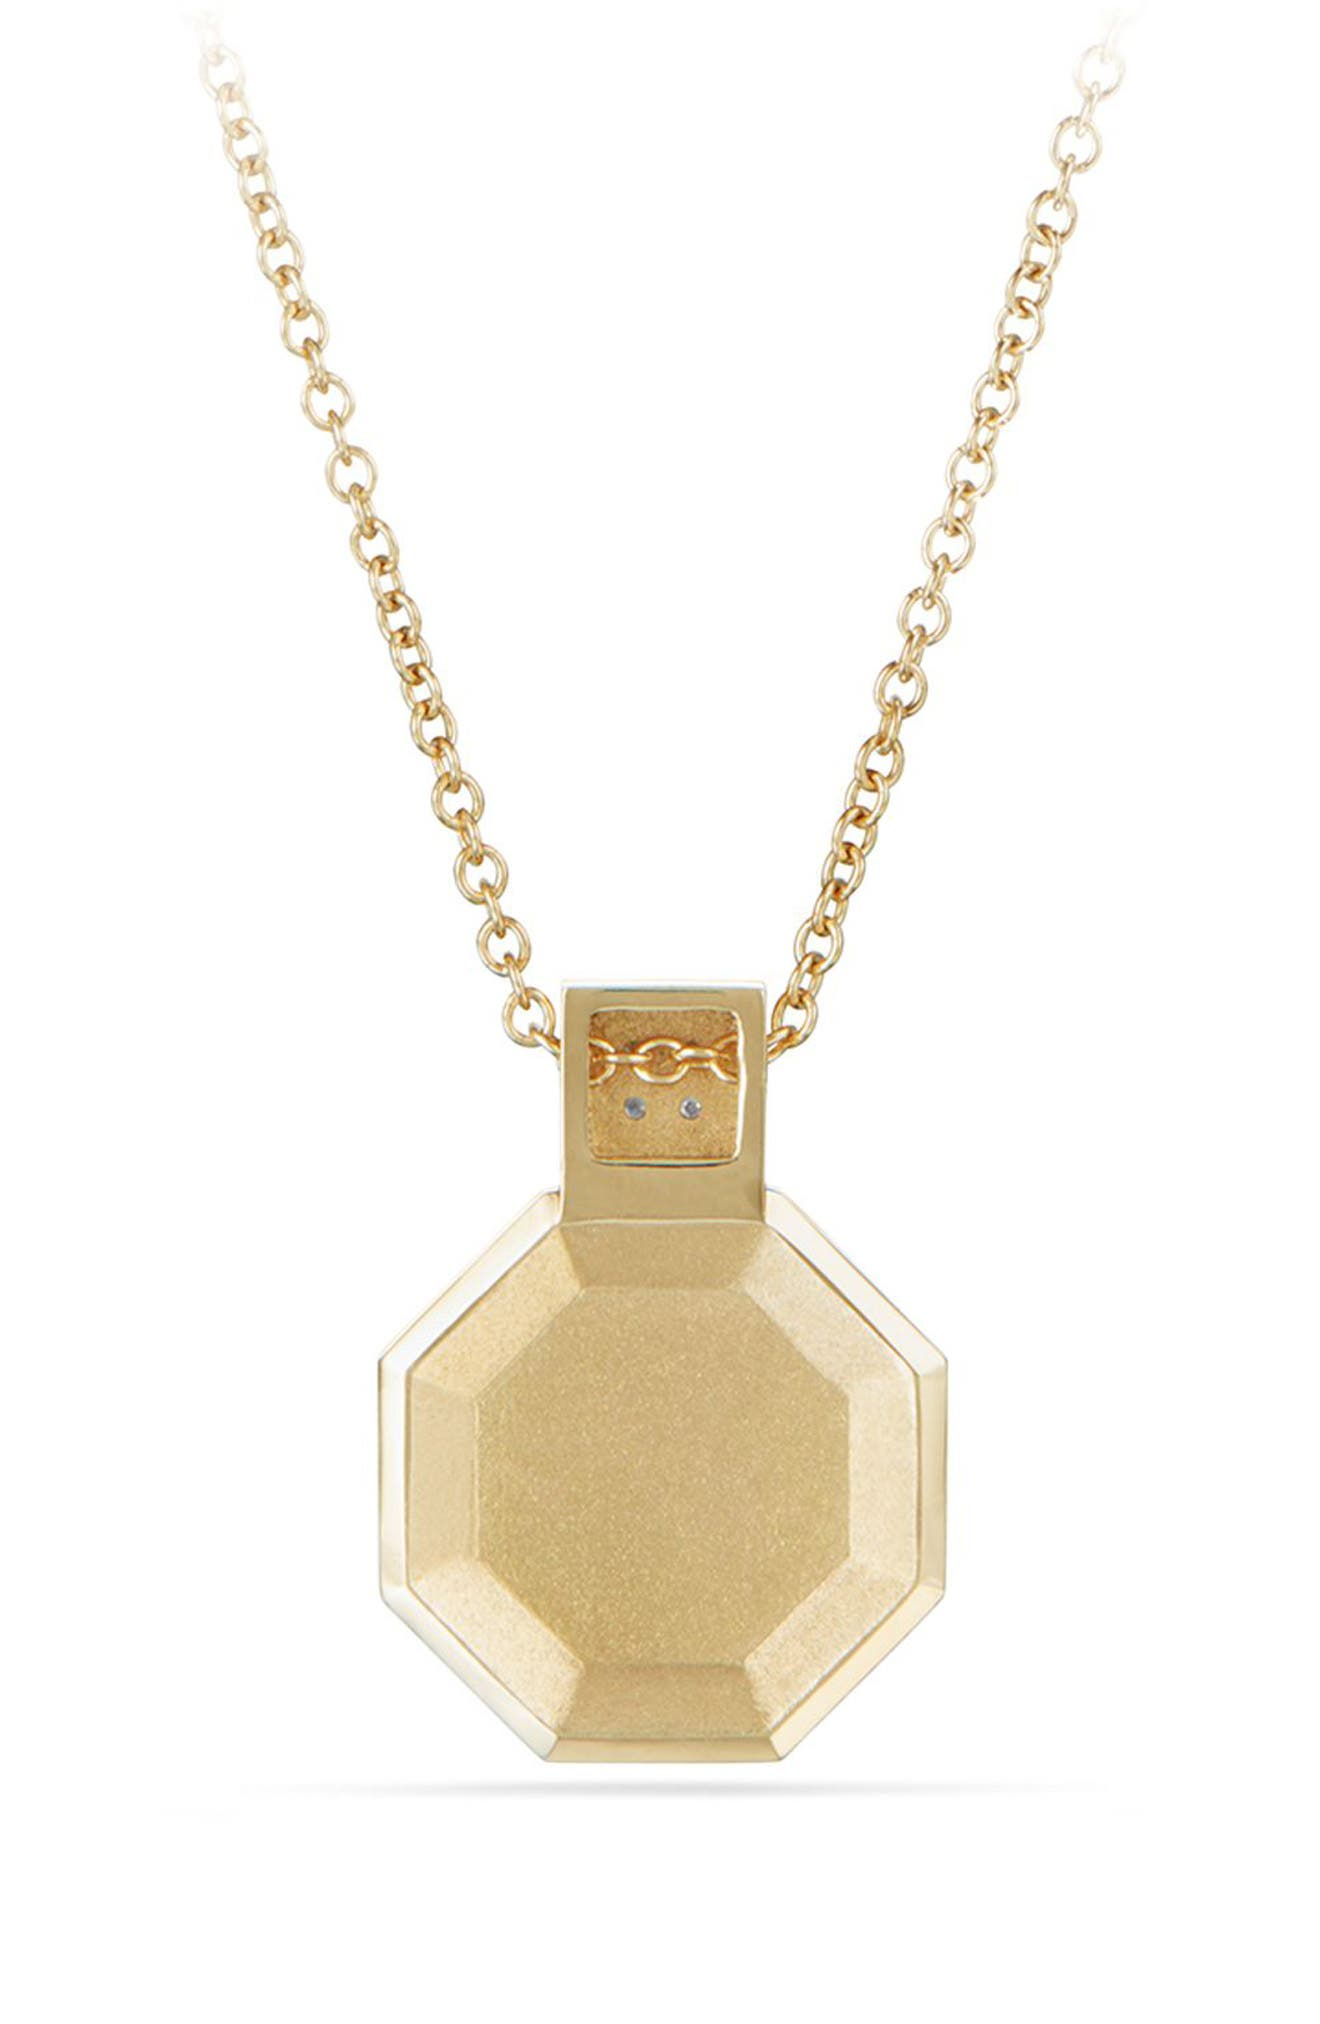 Guilin Octagon Pendant Necklace,                             Alternate thumbnail 2, color,                             YELLOW GOLD/ DIAMOND